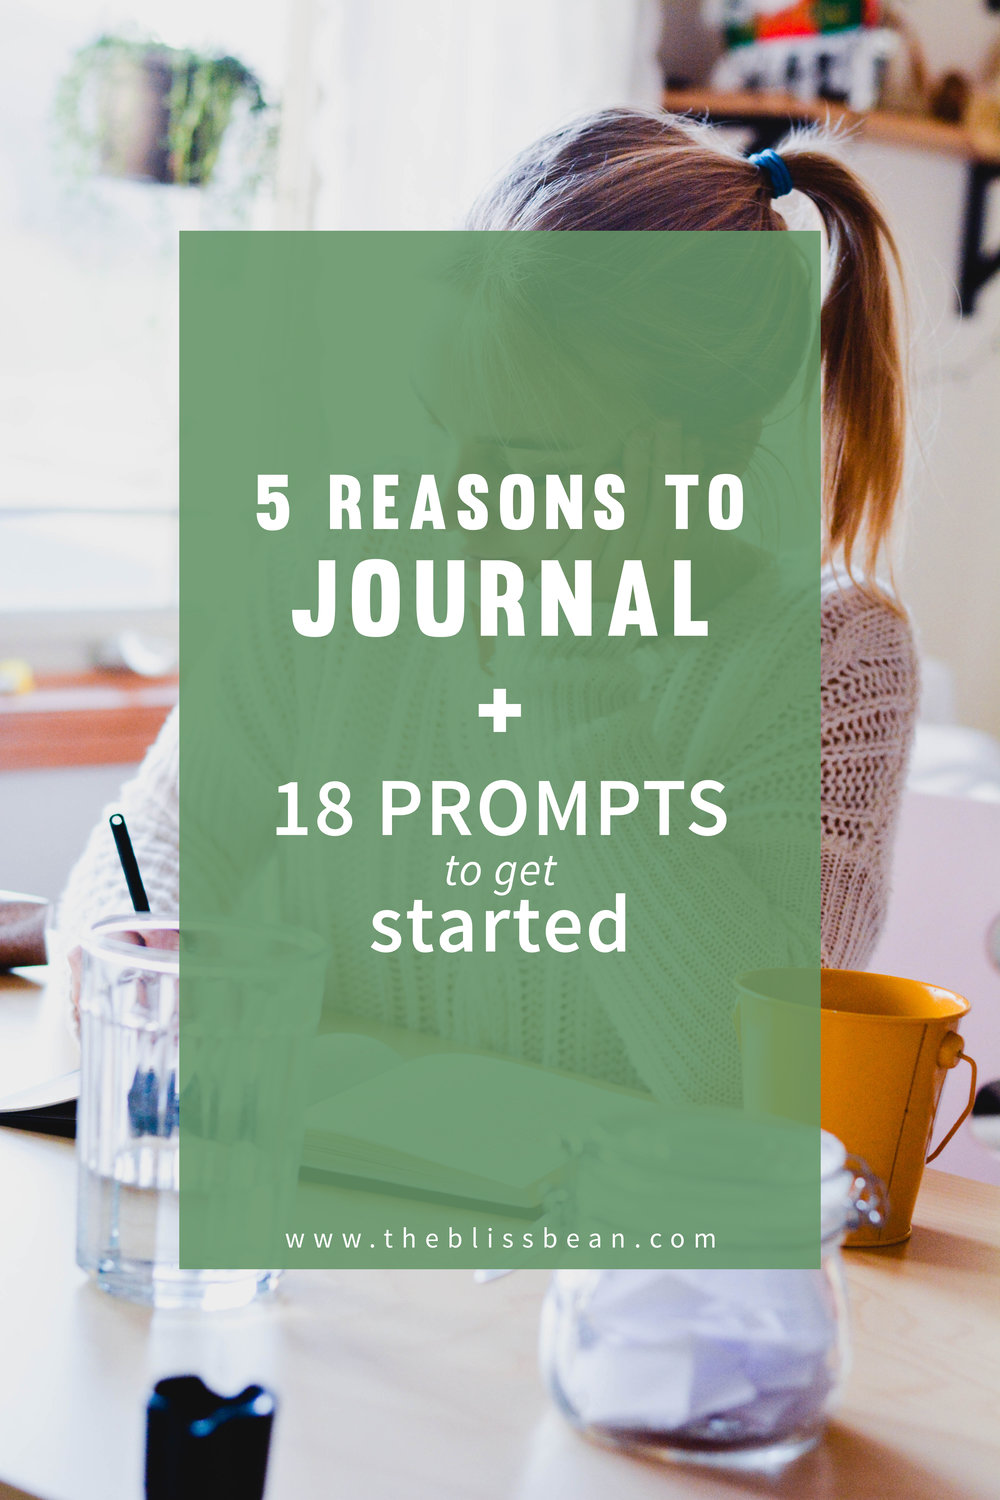 5 reasons to journal cover photo.jpg